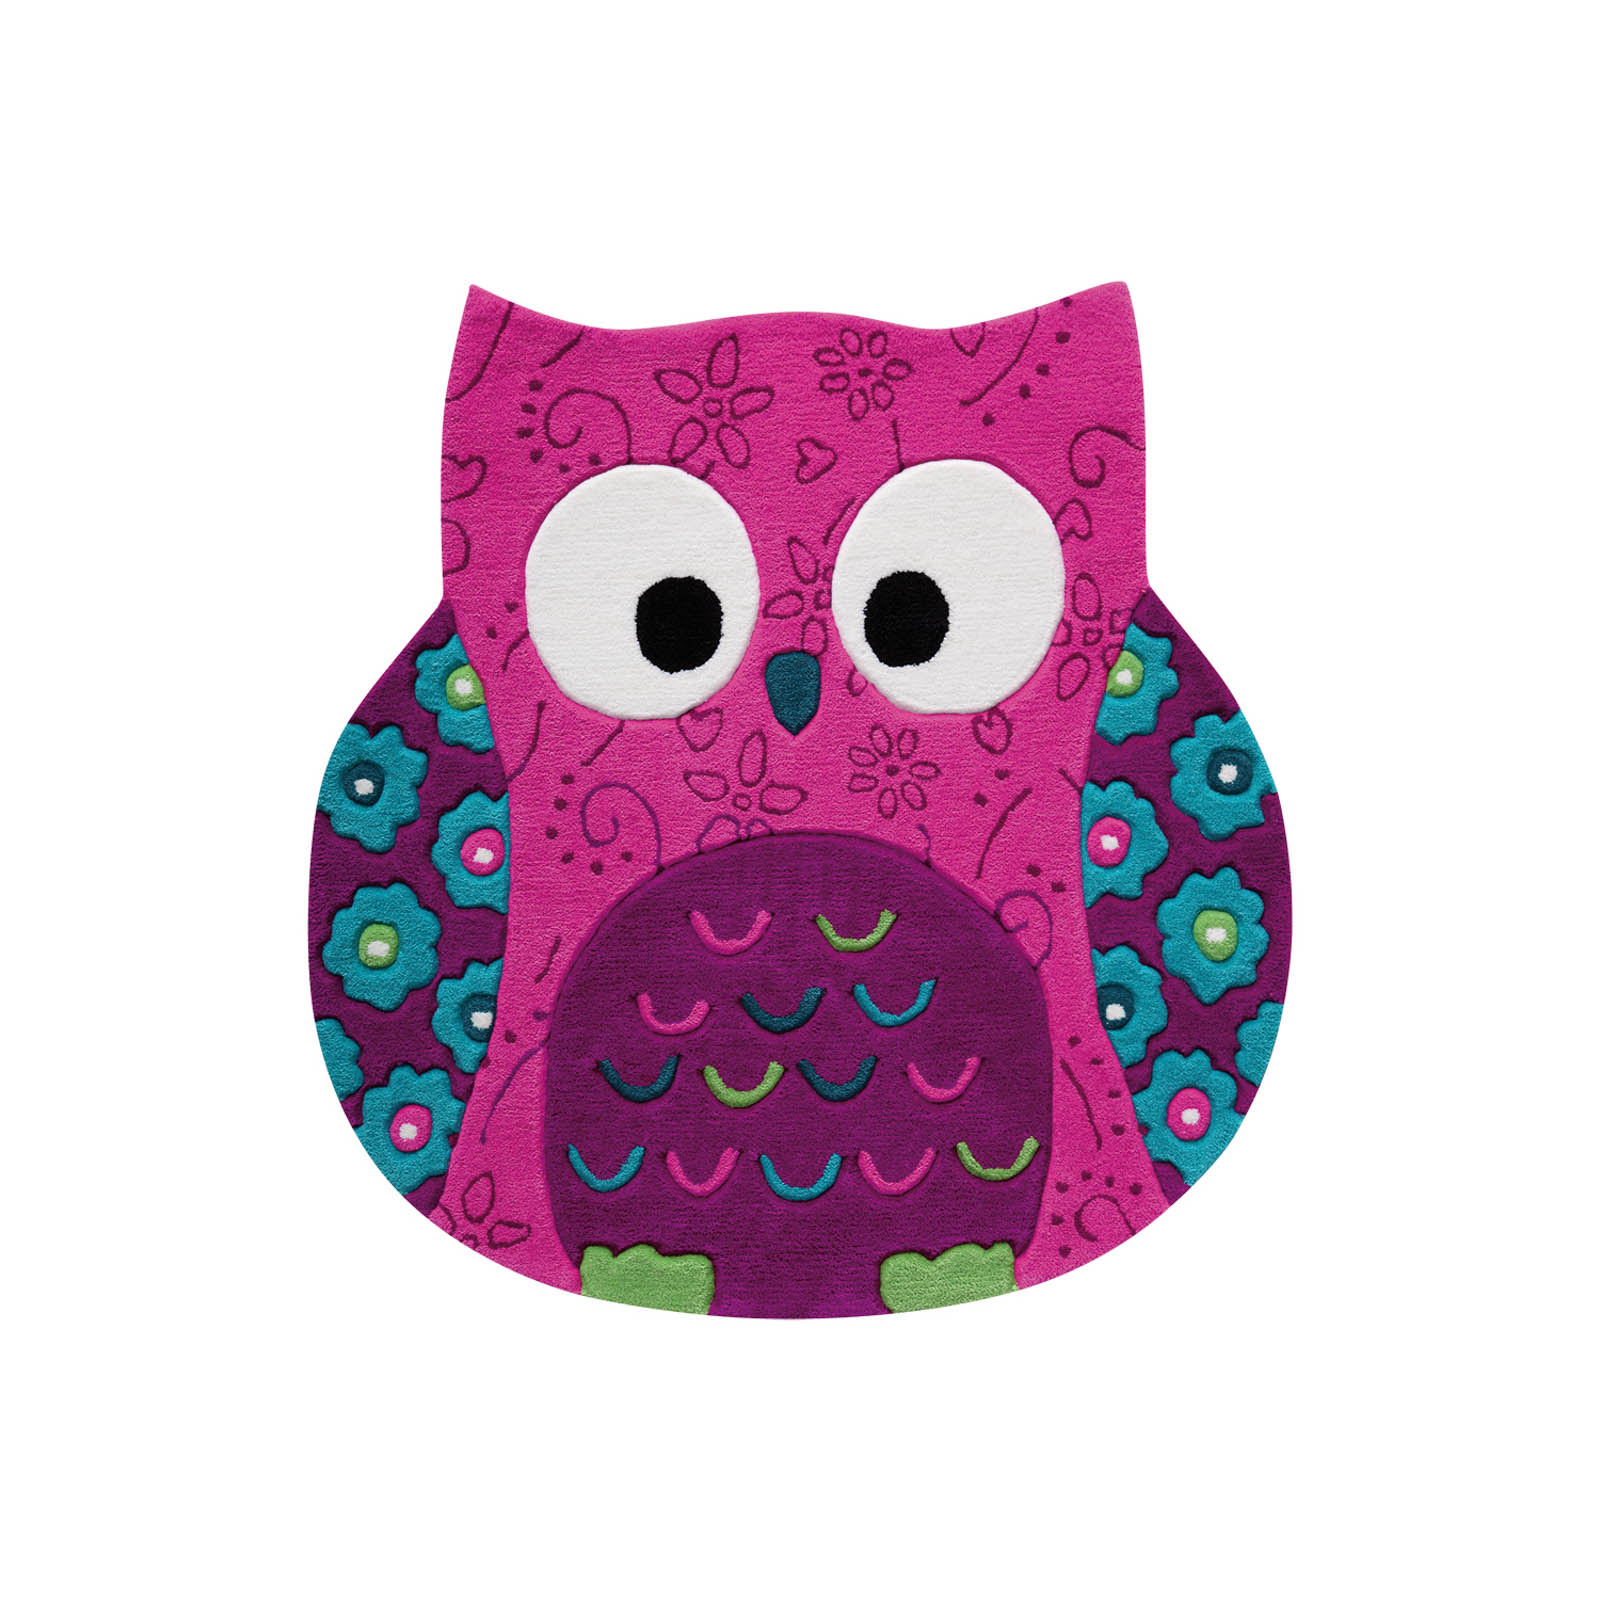 Little Owl Rugs 3659 04 in Pink